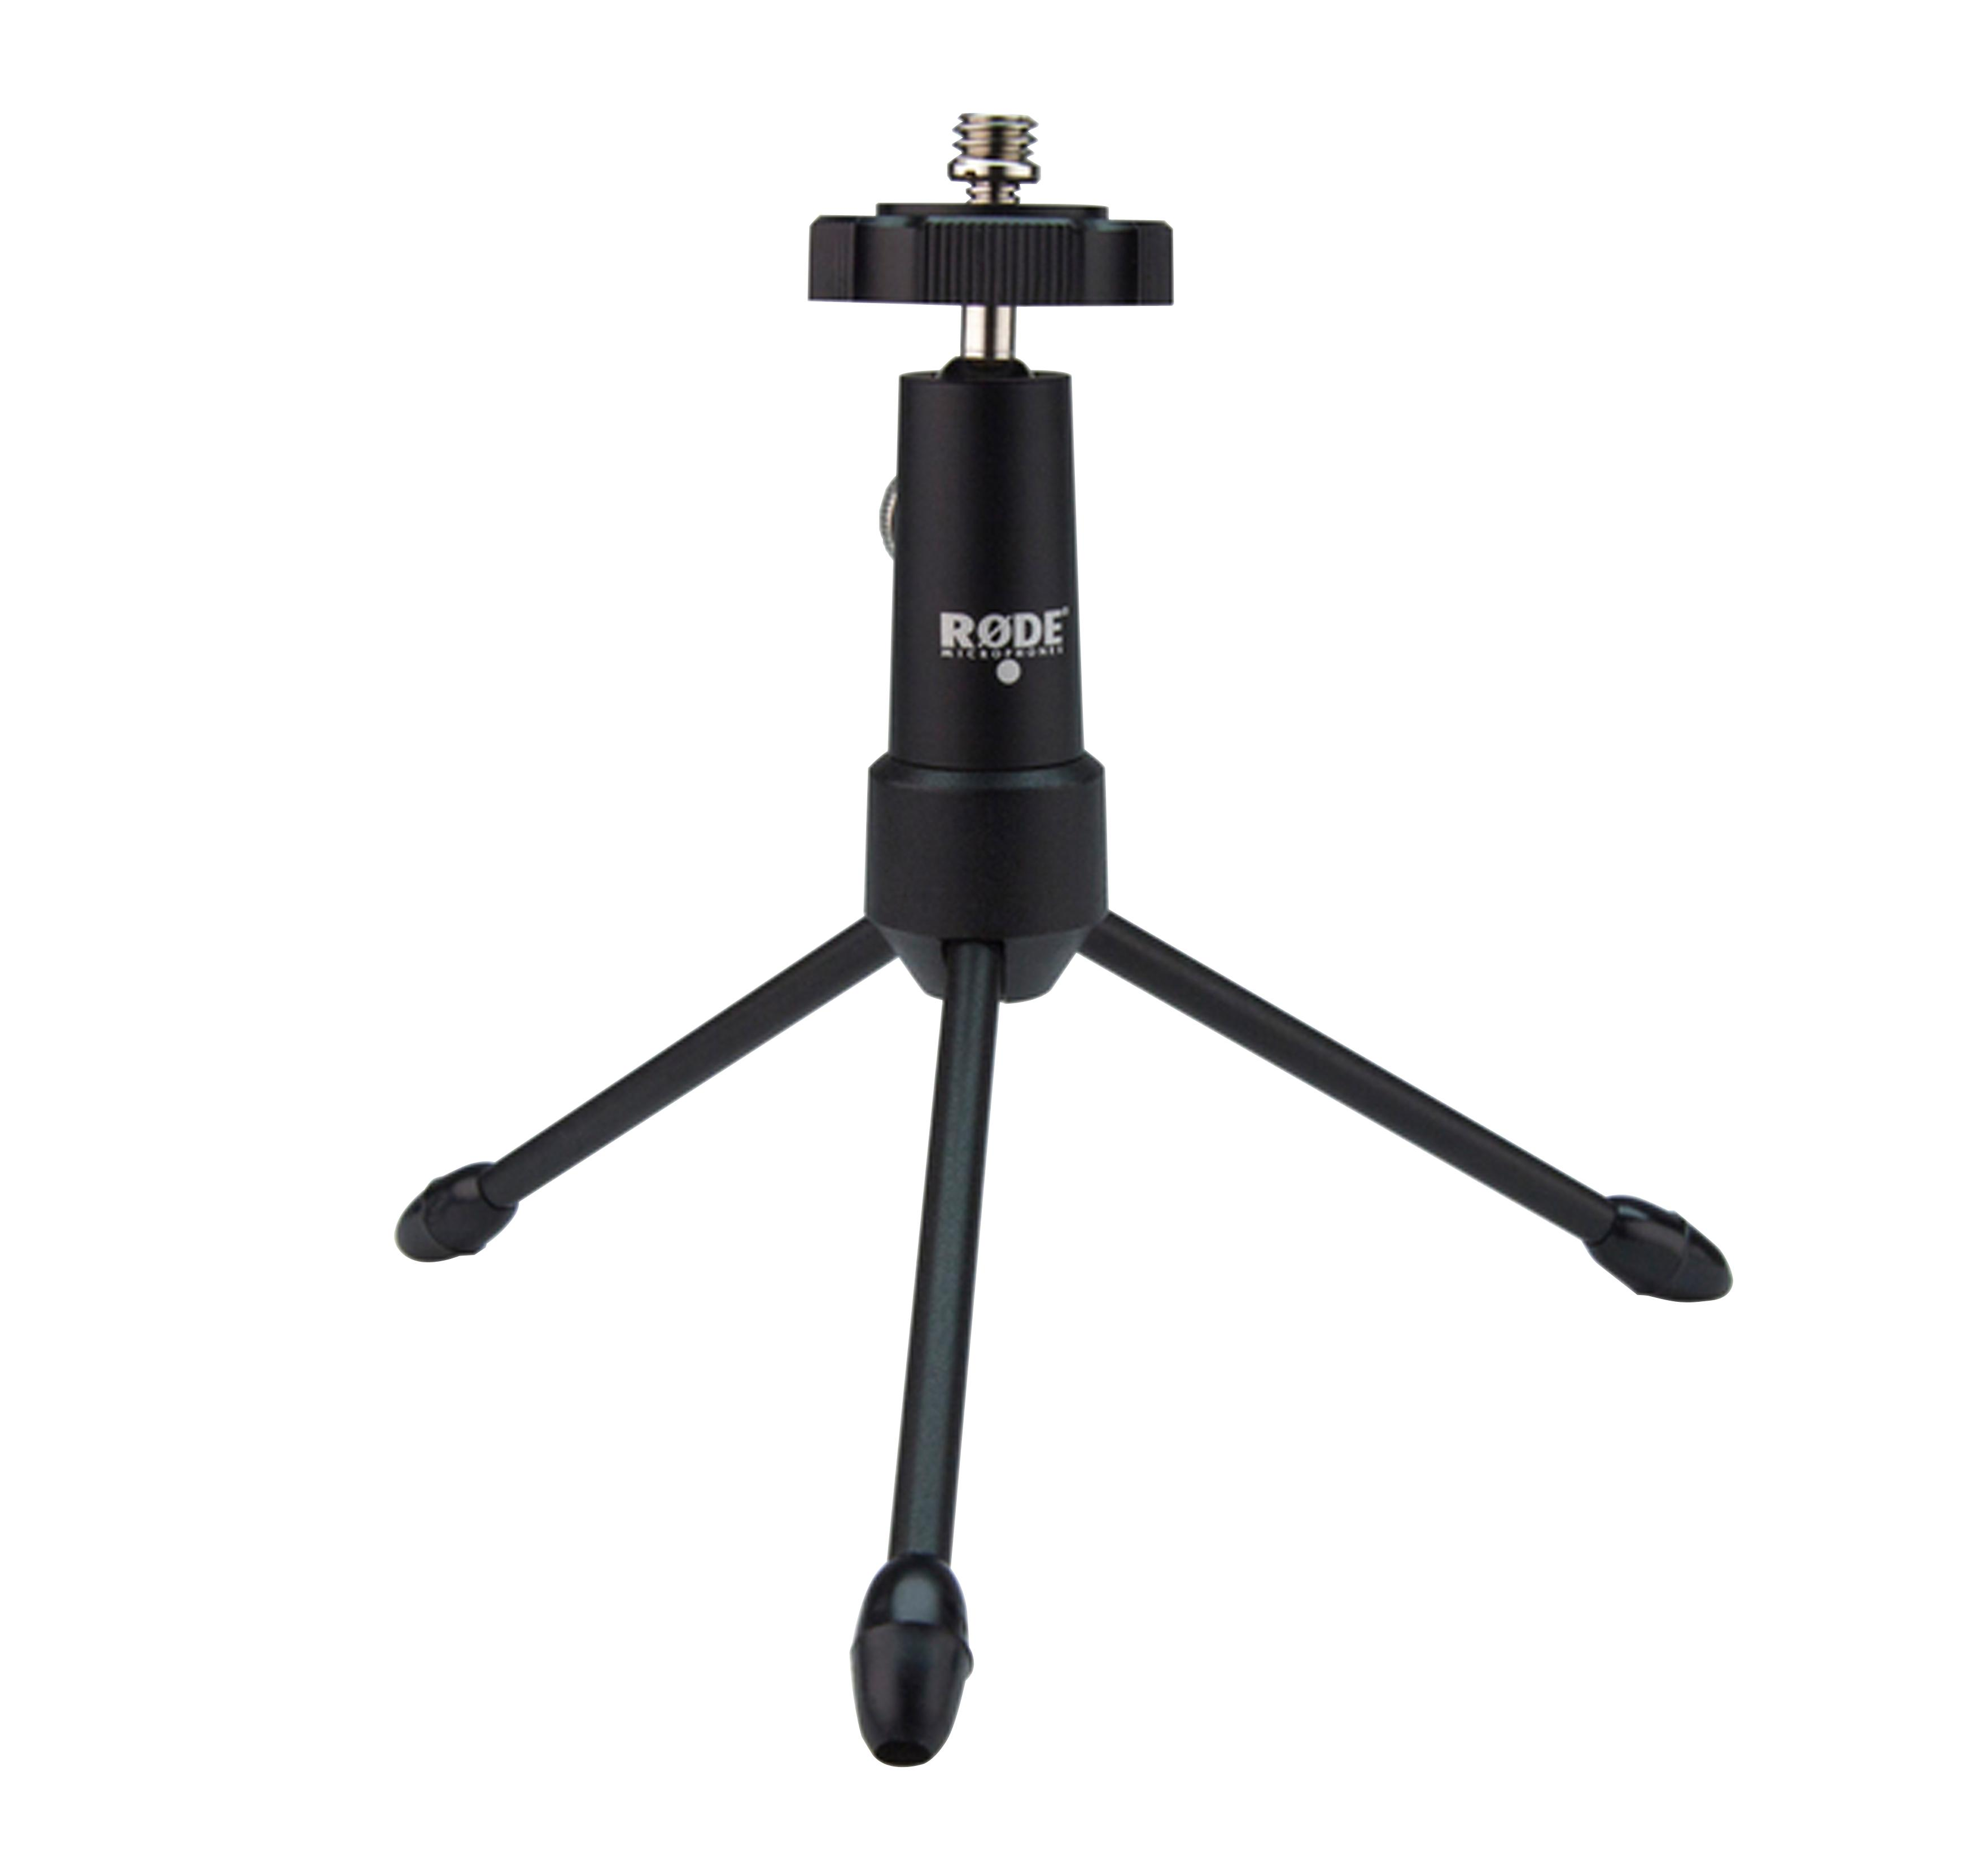 rode tripod mini tripod stand musical instruments